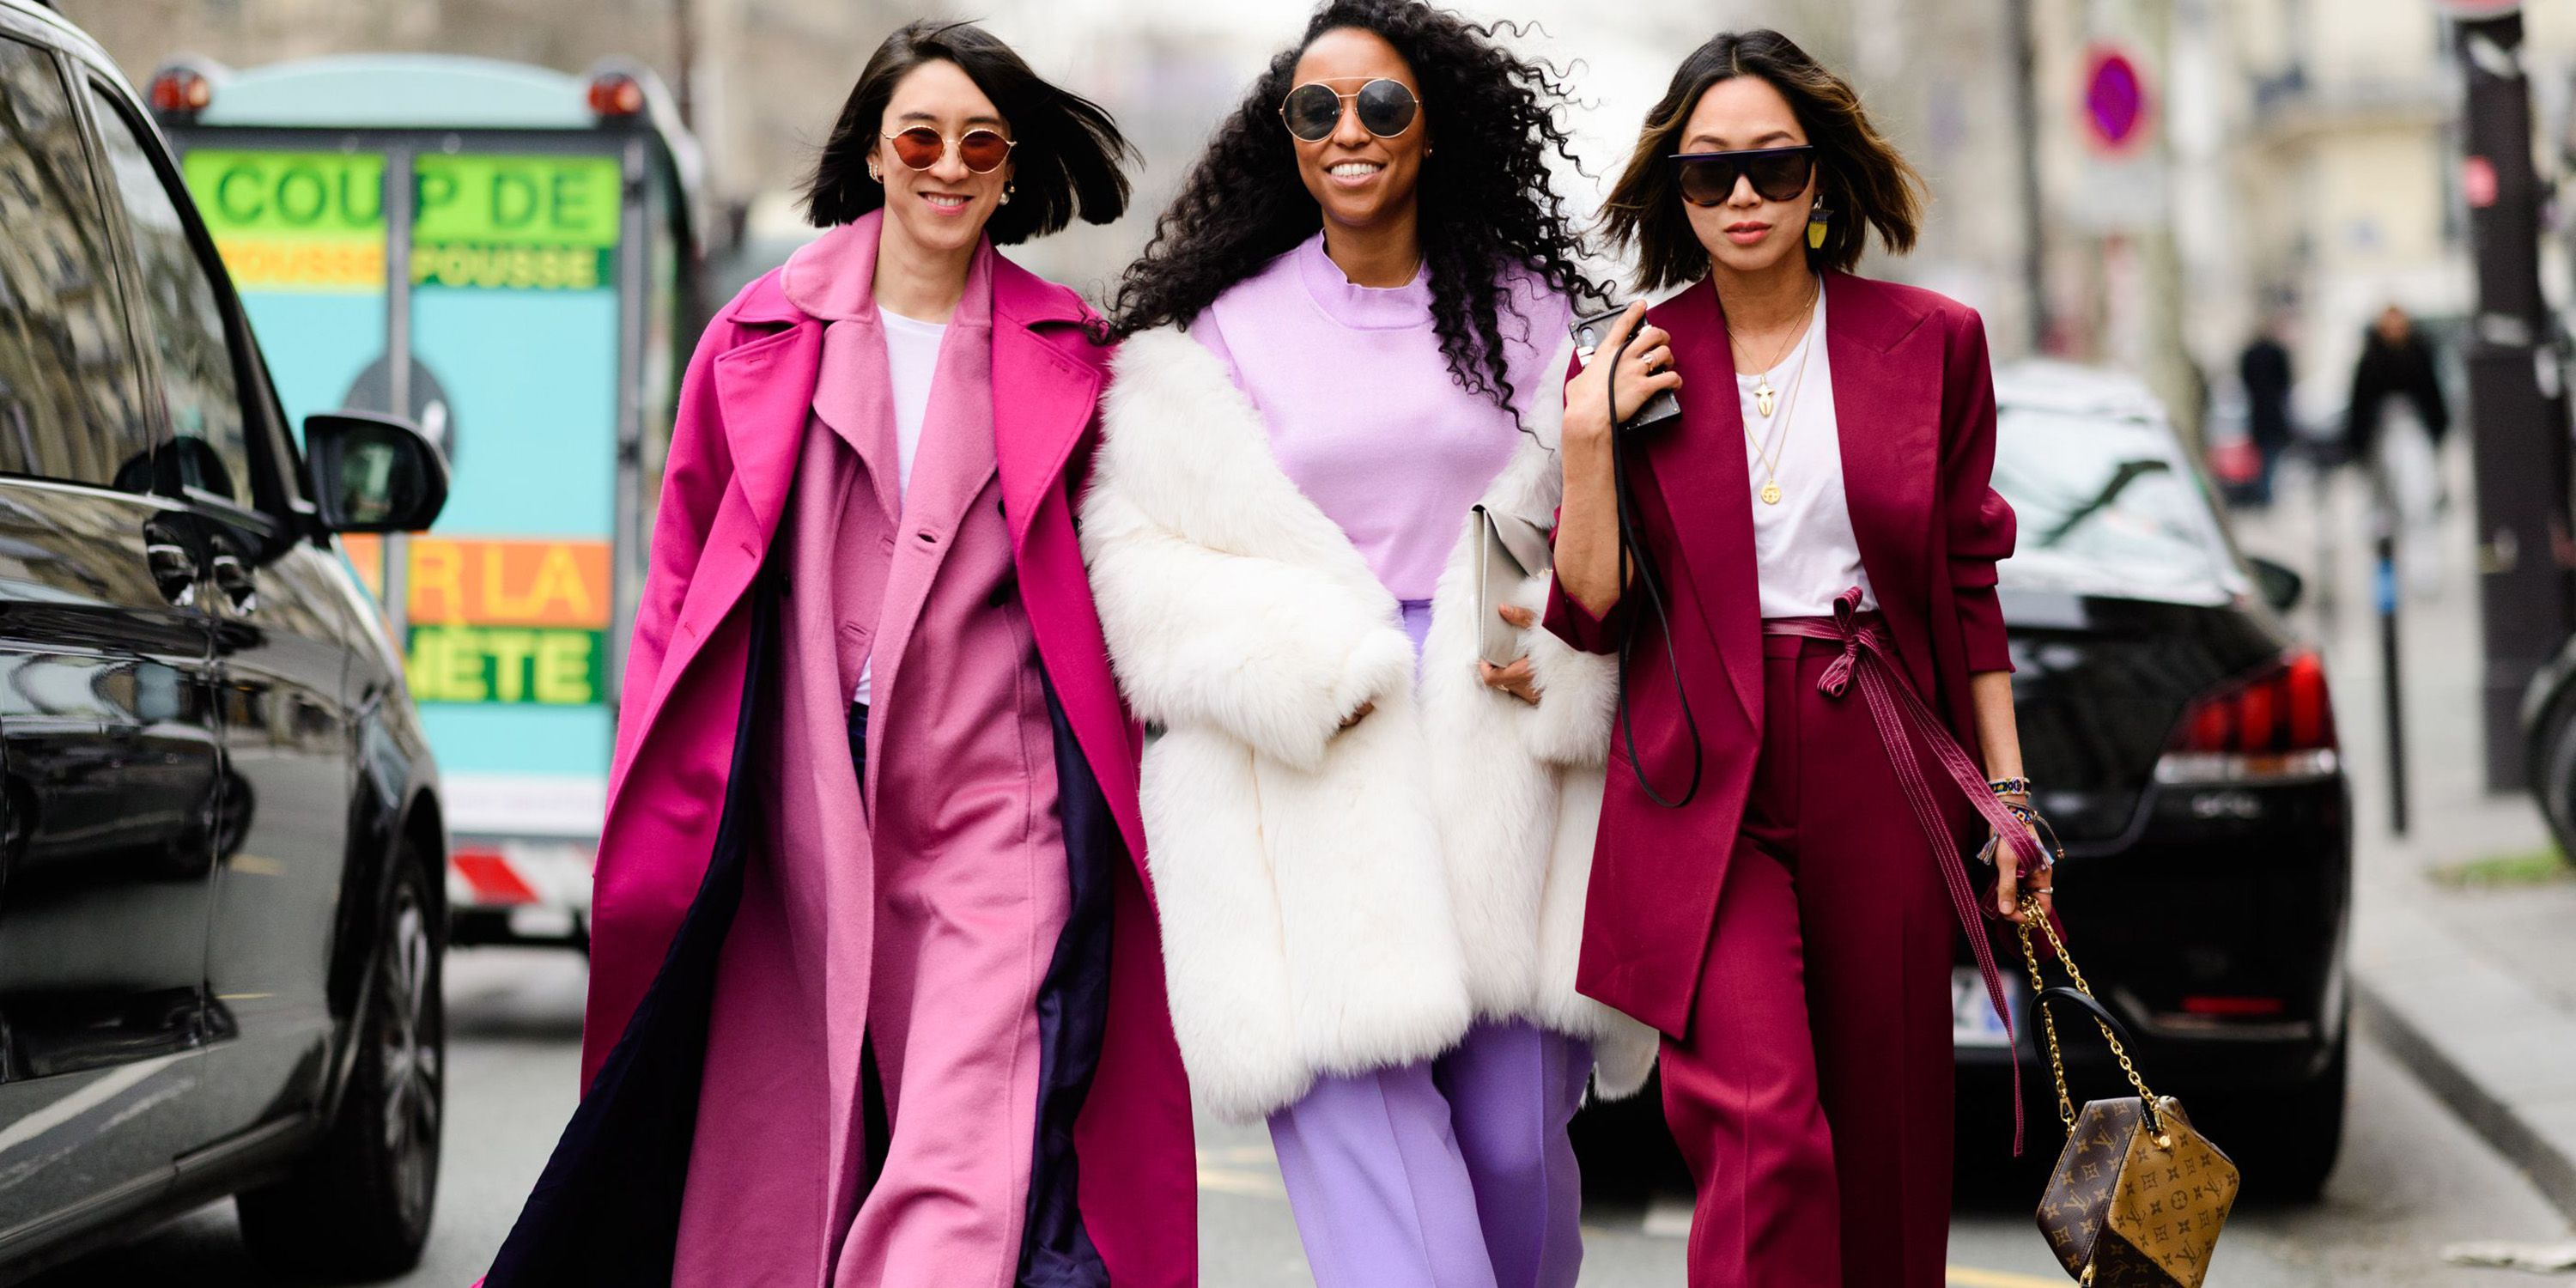 STREET STYLE LESSONS FROM THE A/W 2018 SHOWS!